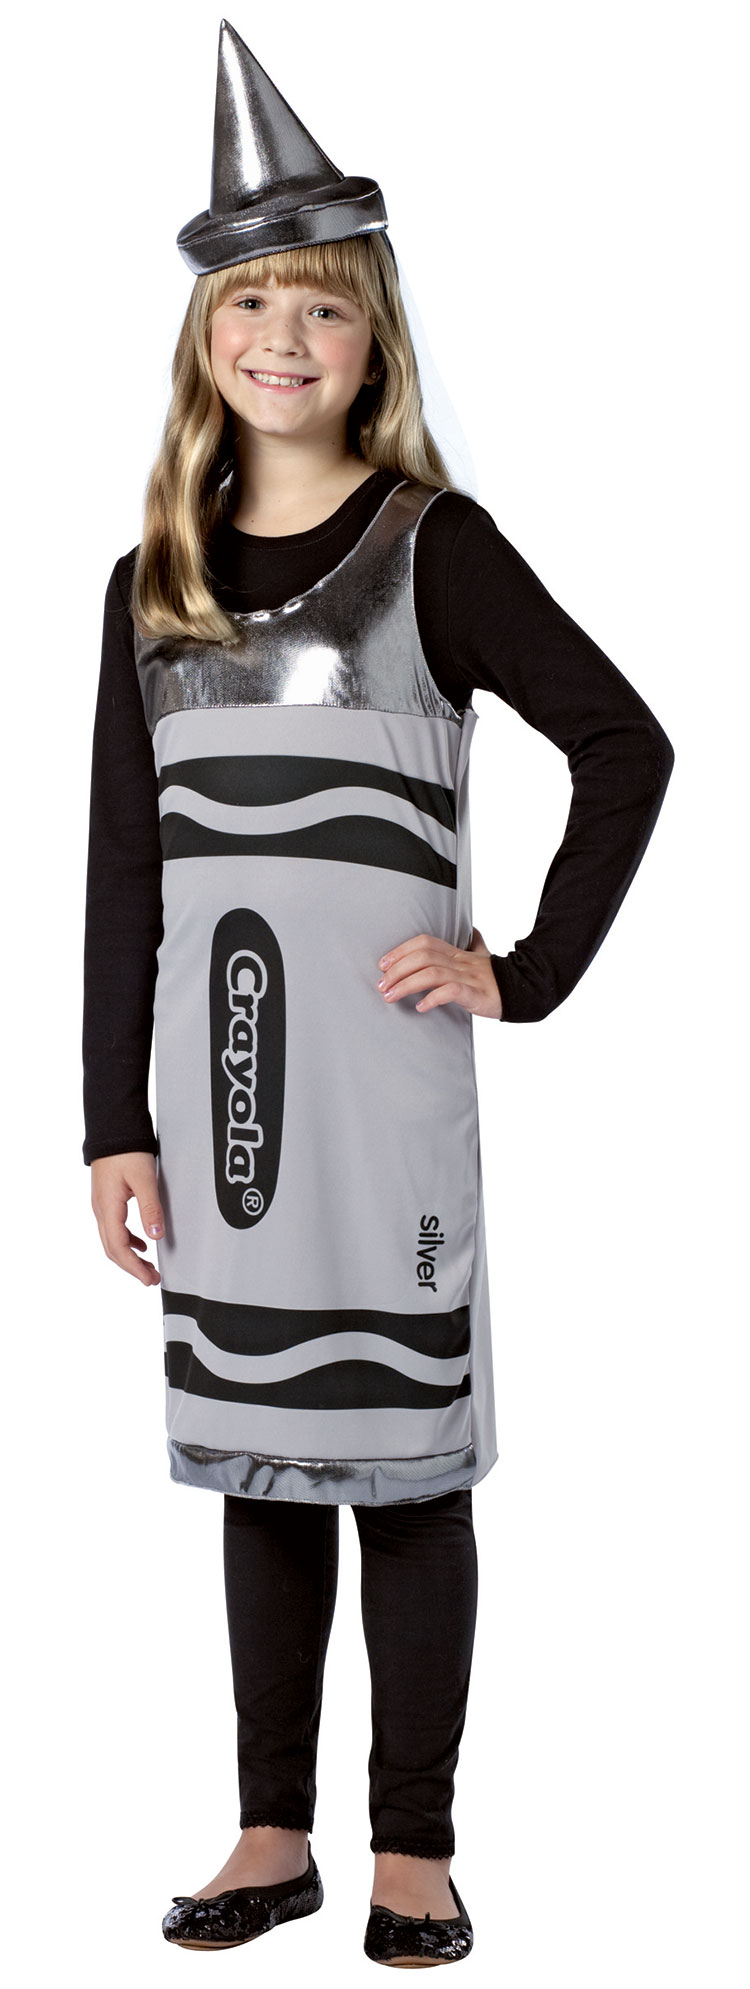 Tween Silver Crayola Costume Dress